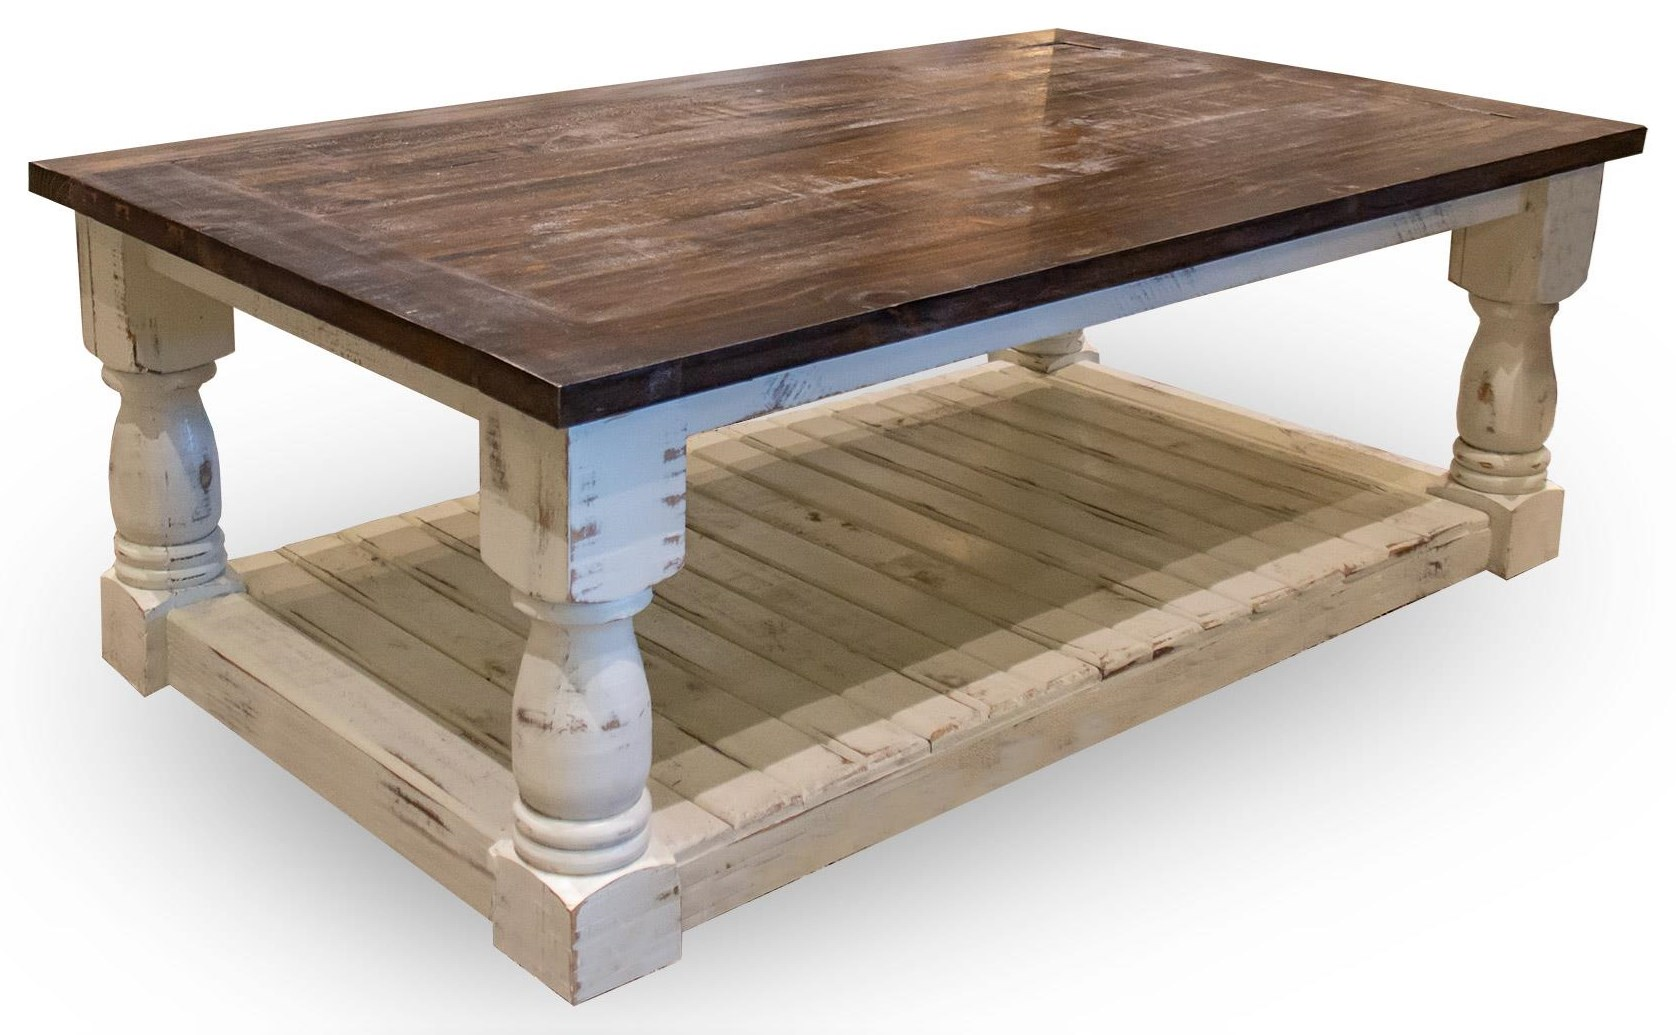 new product 32111 cdfb5 Occasional Tables Vineyard Coffee Table by Vintage at Great American Home  Store